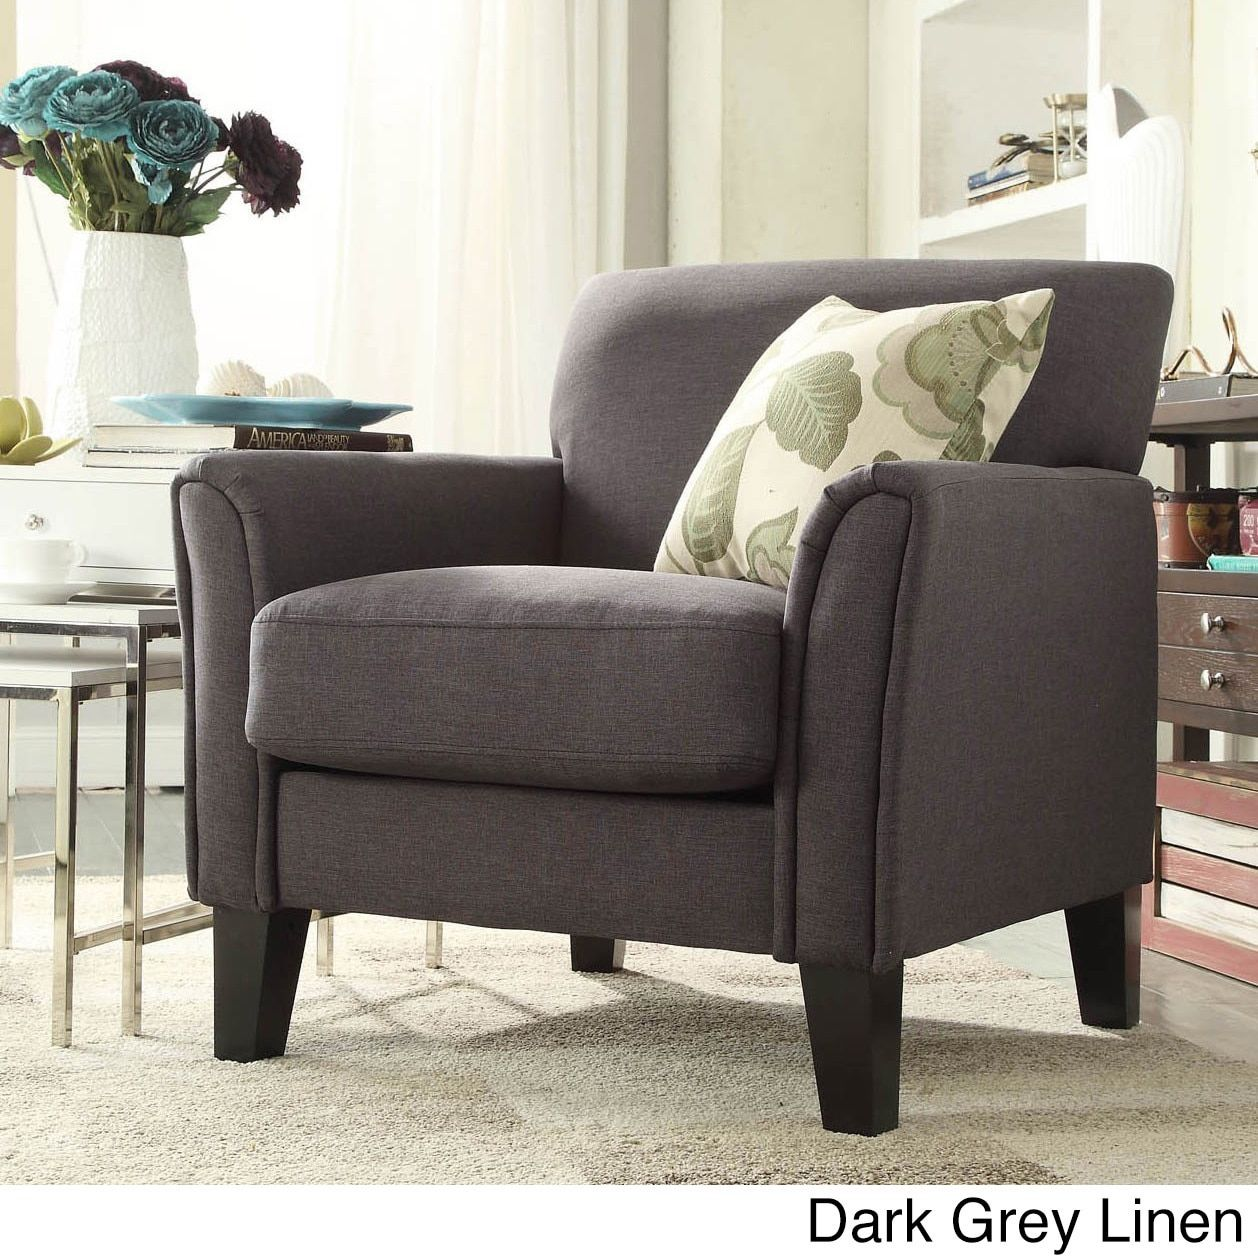 Living Room Chairs Modern Accent Chair Living Room Chairs Accent Chairs Cute chairs for living room